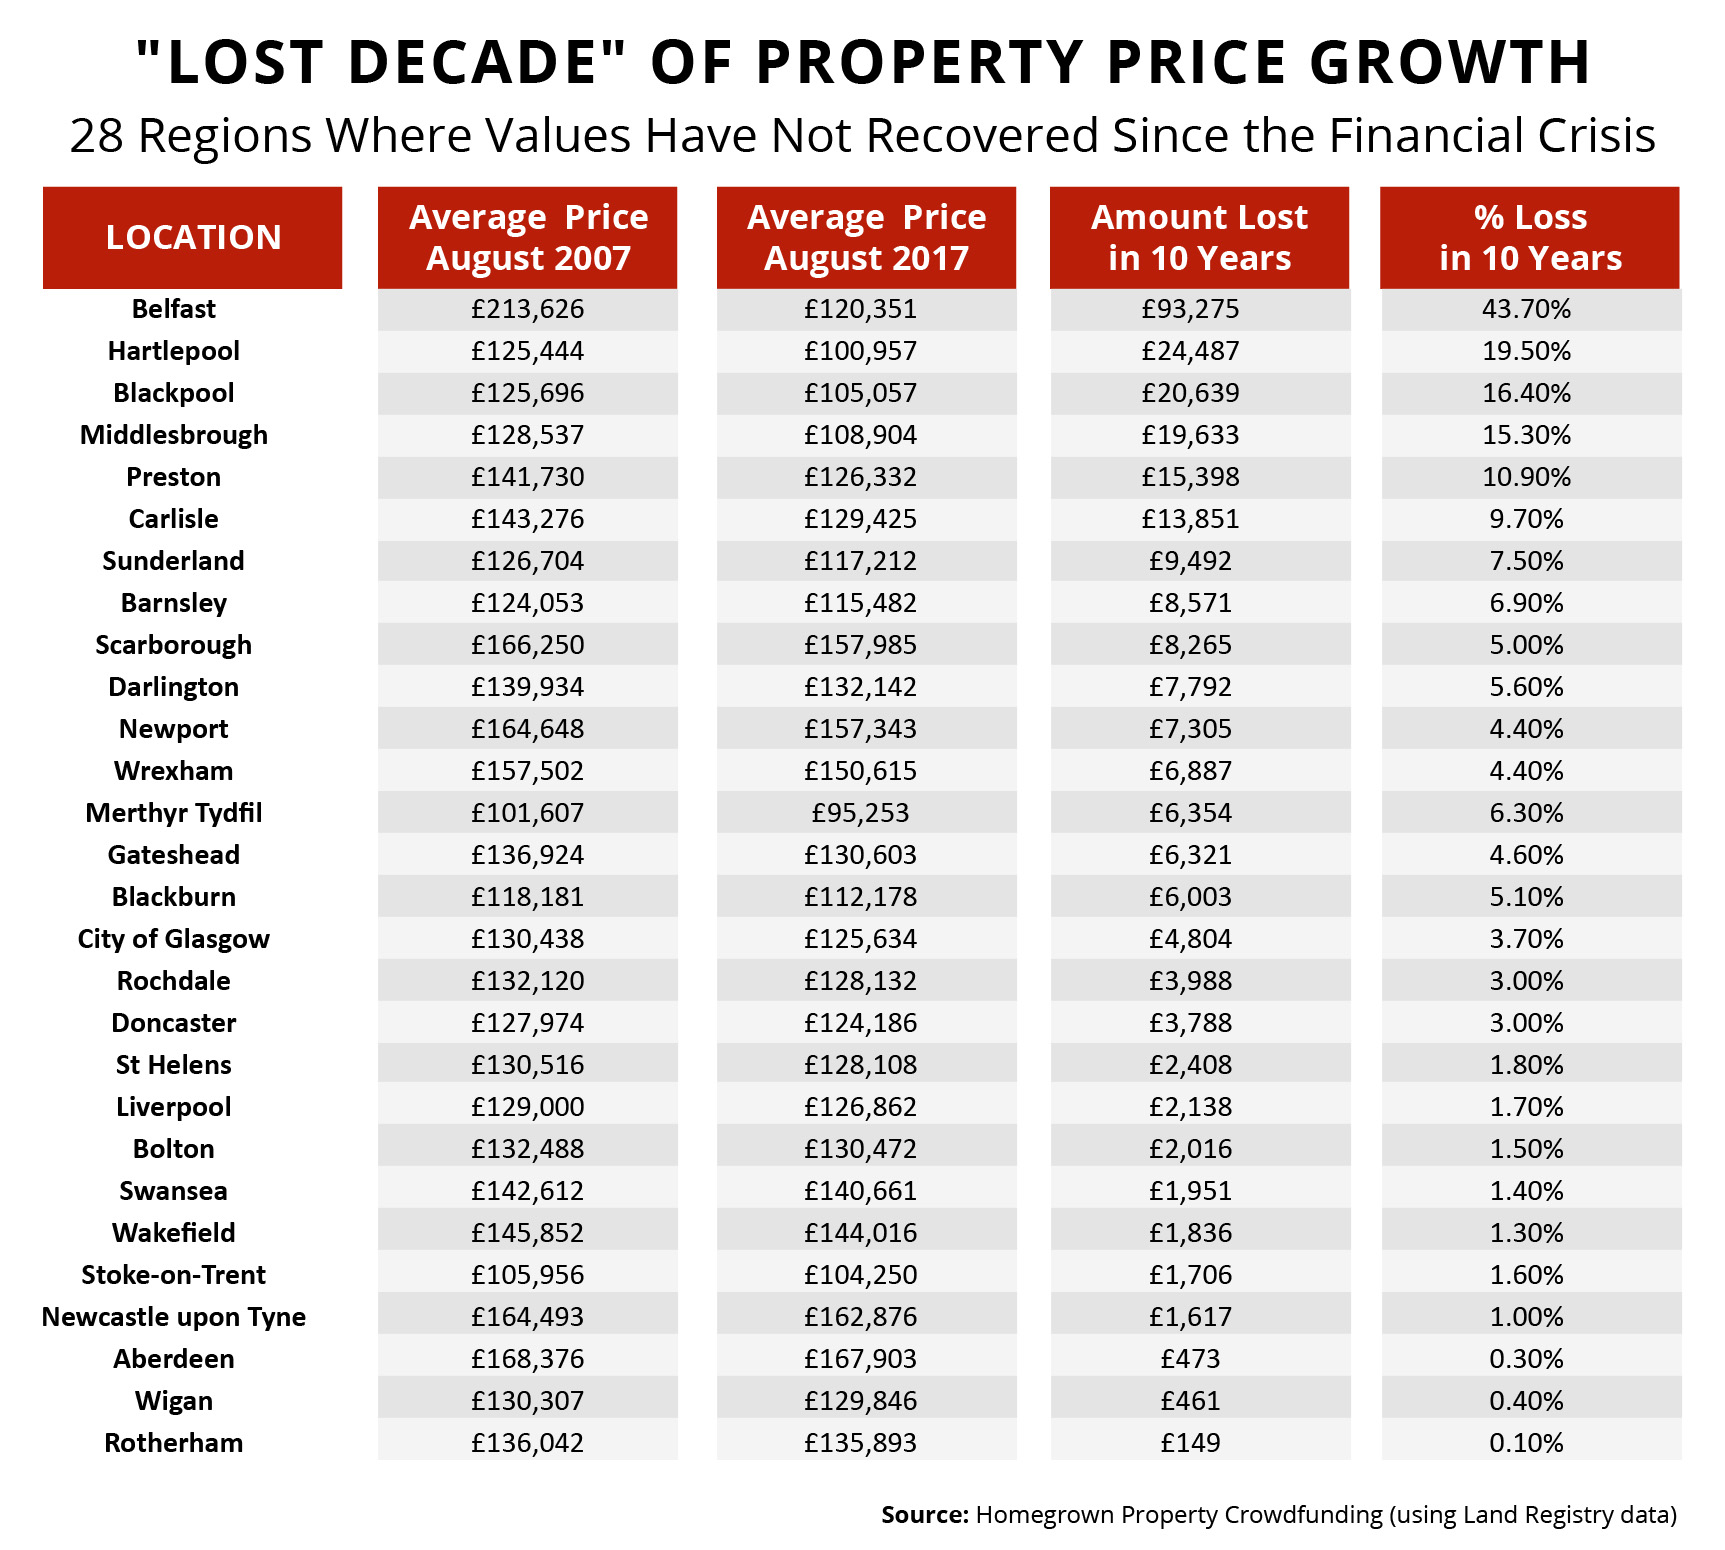 Lost Decade of Property Price Growth Since the 2007 Financial Crash